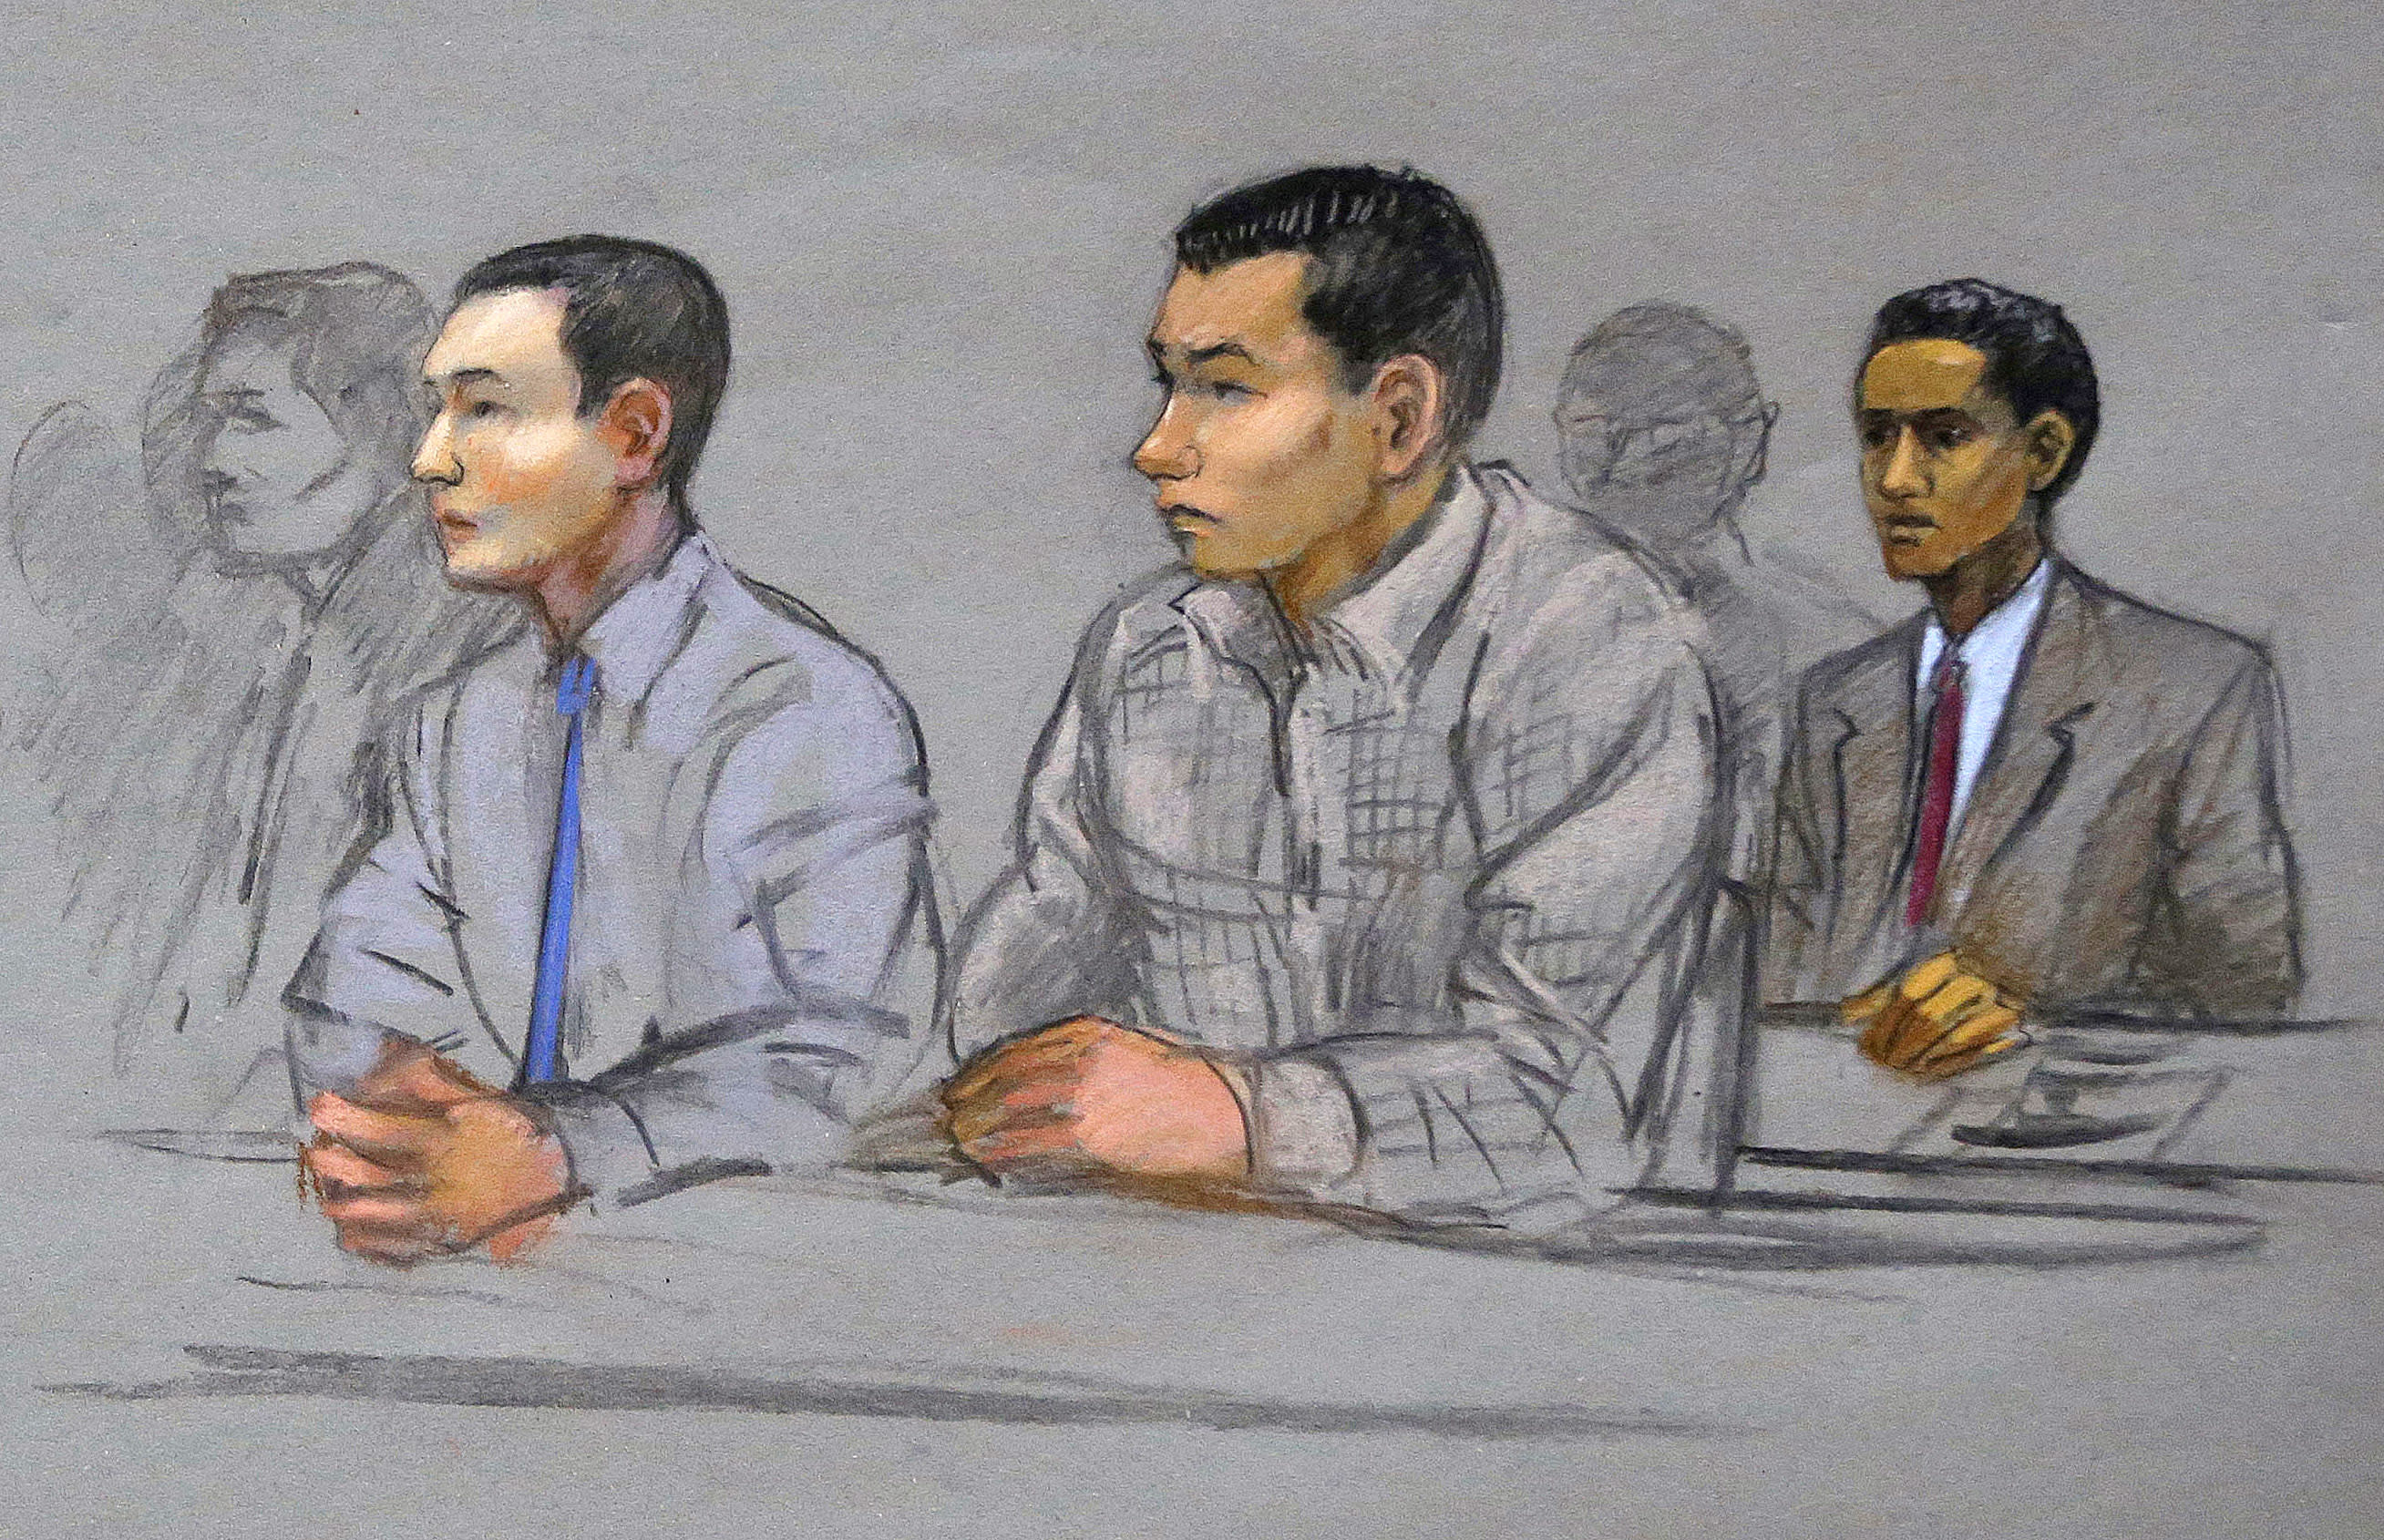 Boston Marathon bomber's college pal gets 6 years in prison